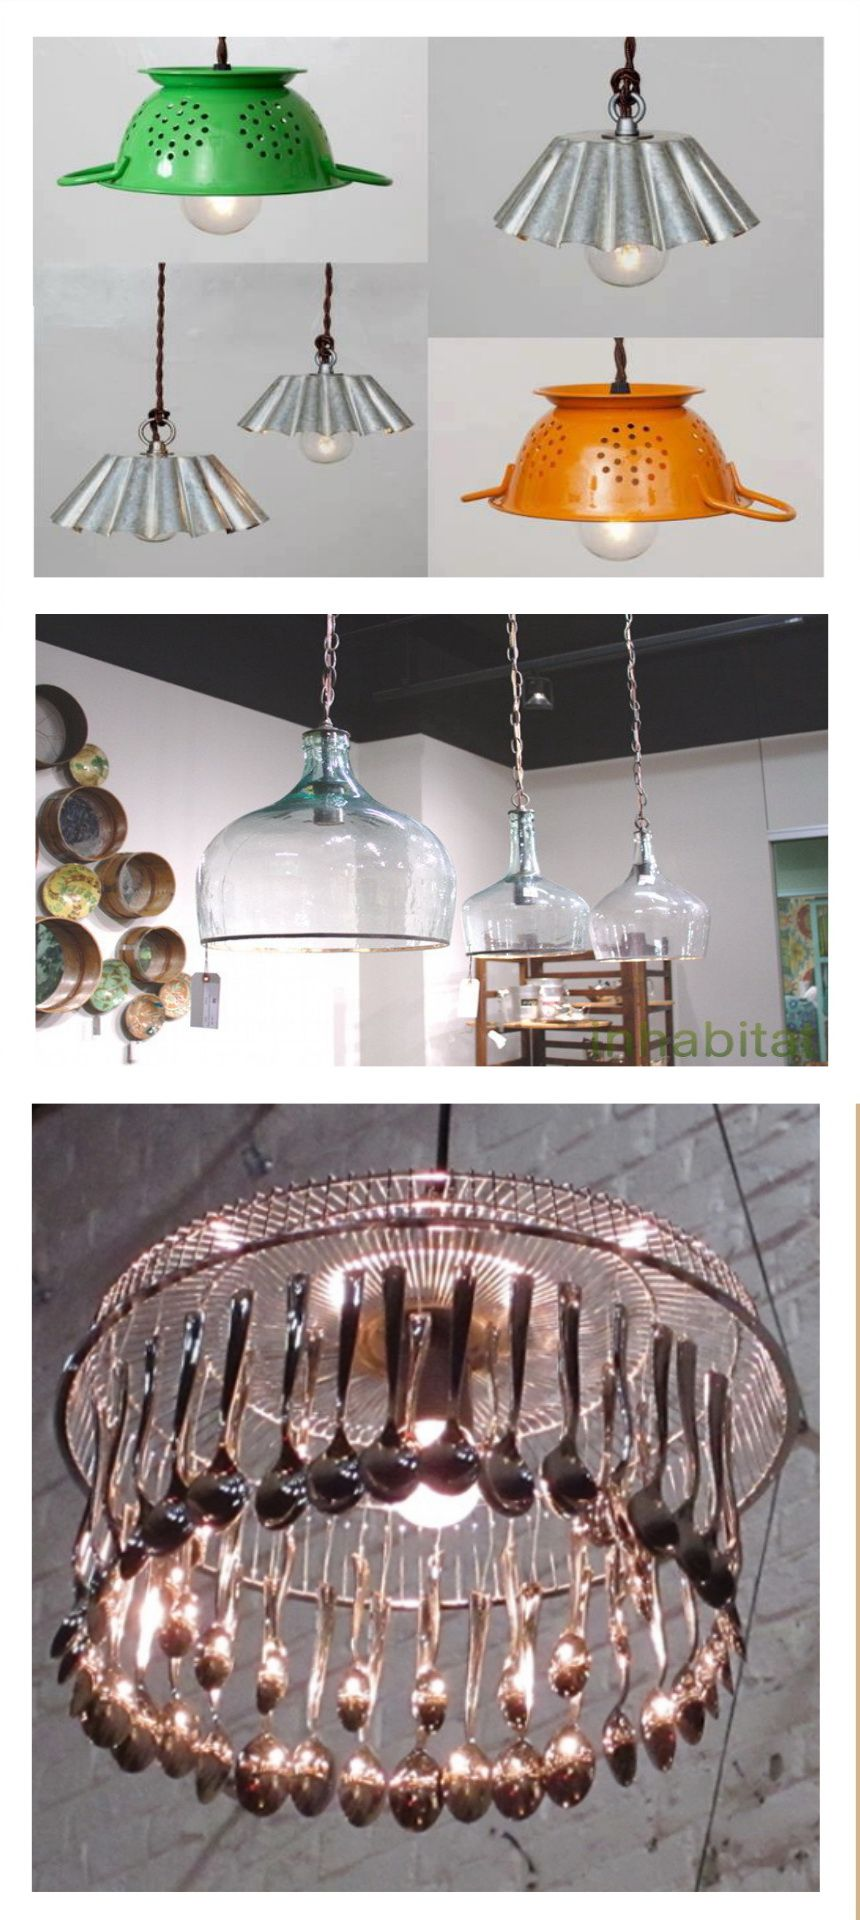 Best Ideas to Reuse Old Kitchen Items